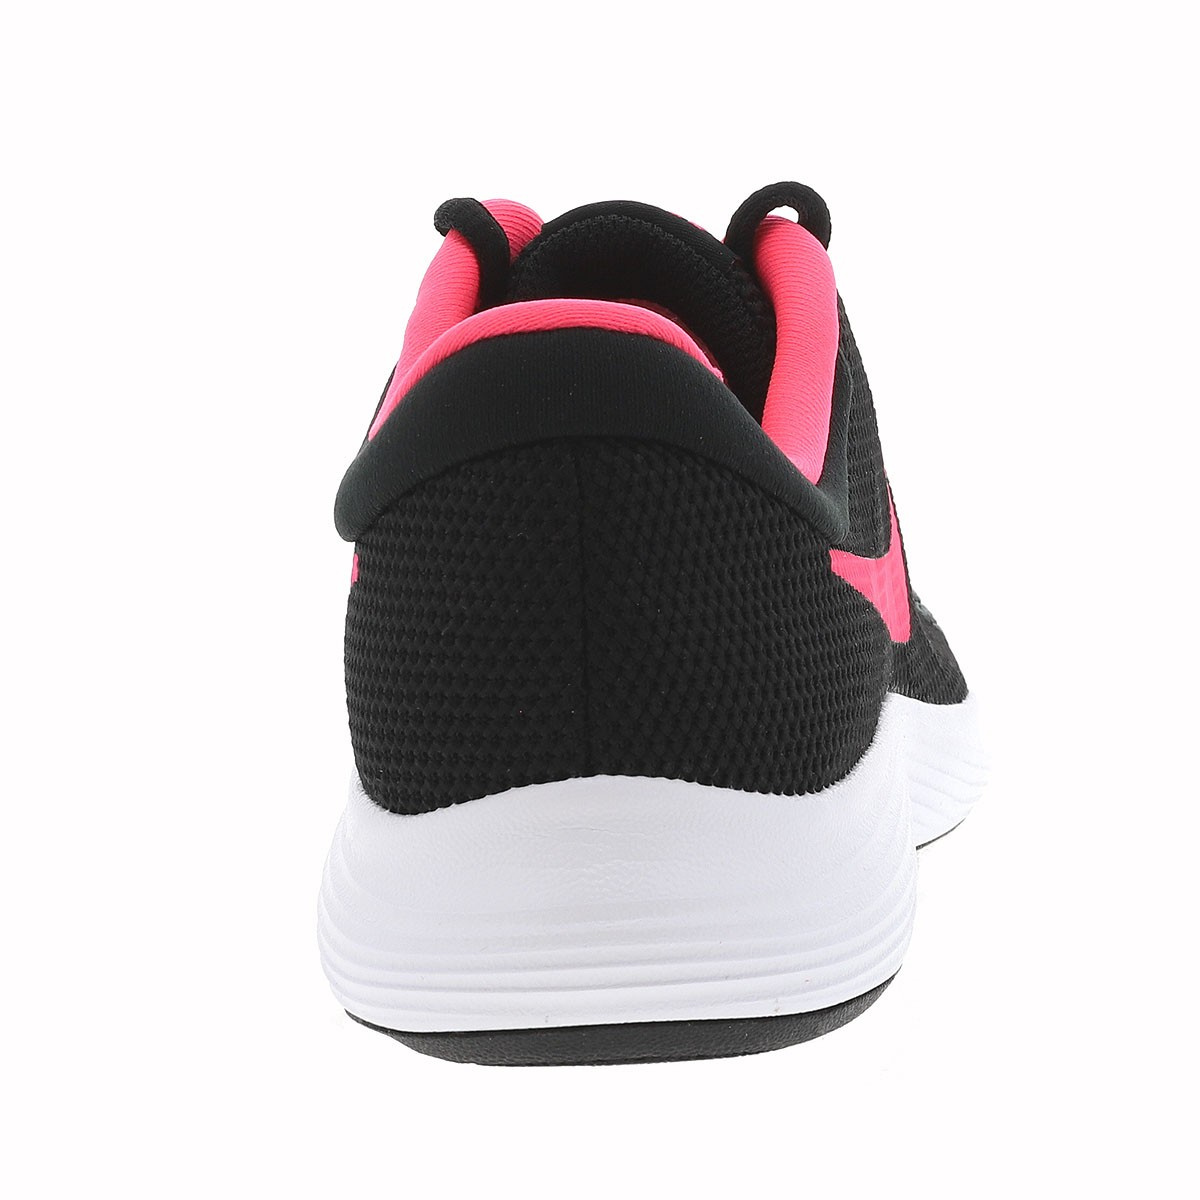 Revolution Noir 4 Baskets Nike Fille edBoWrCx